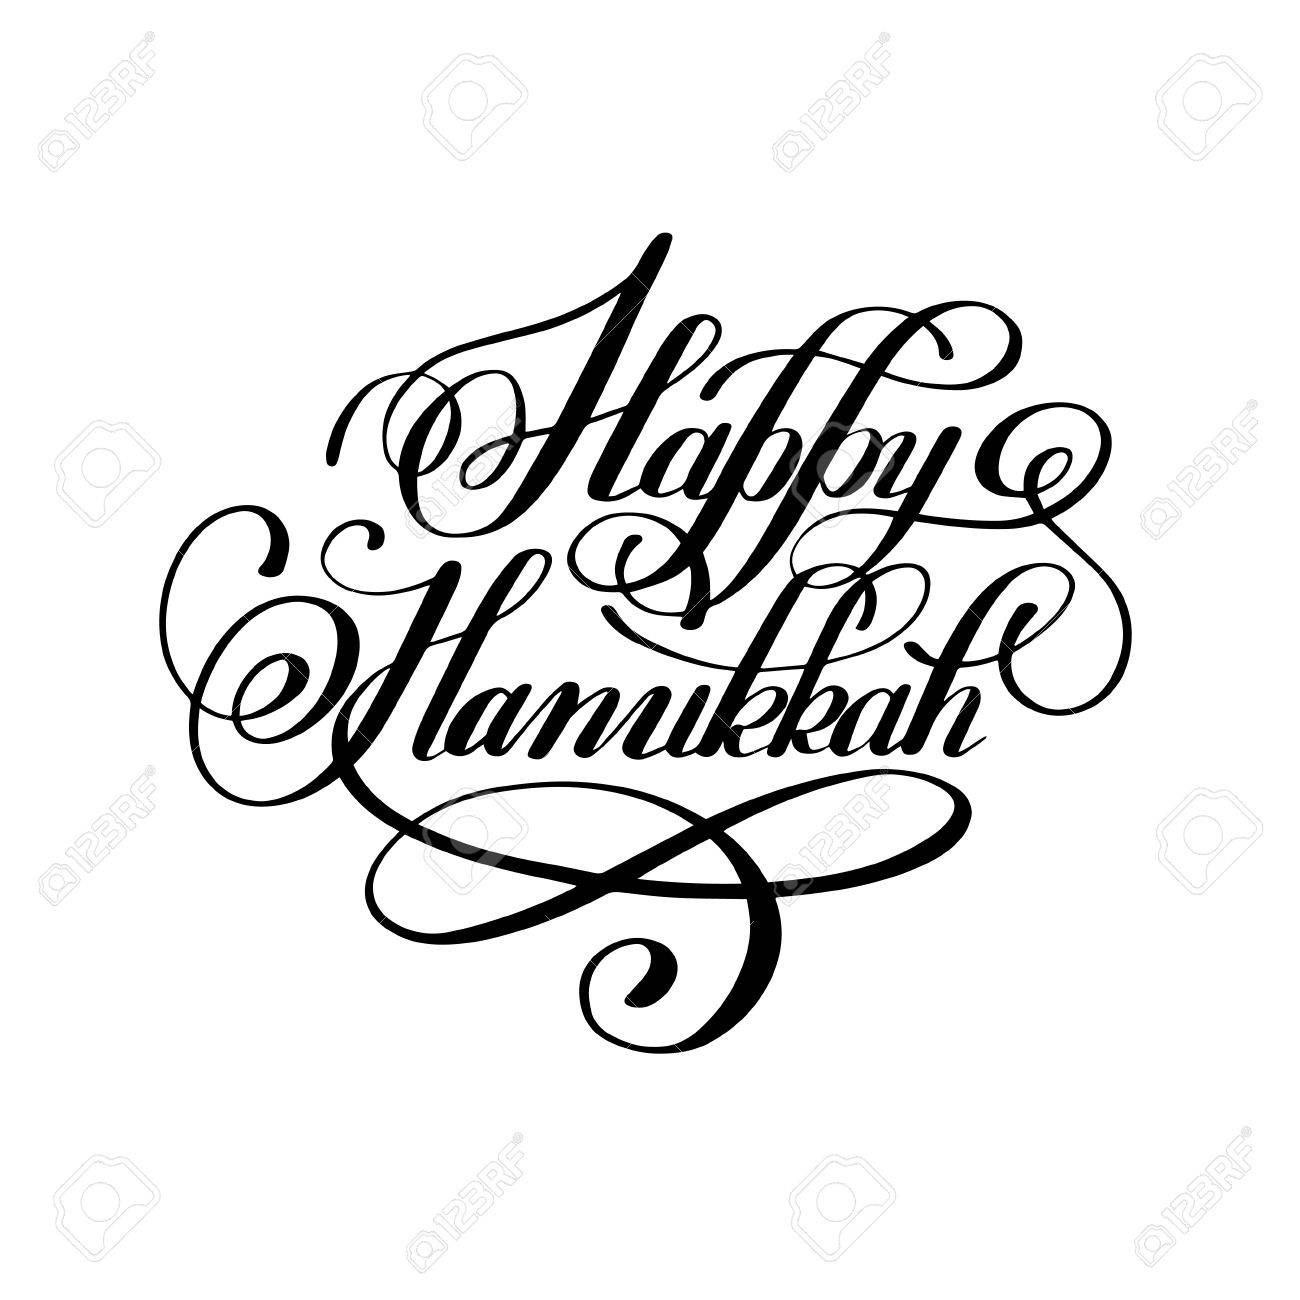 Happy hanukkah handwritten lettering inscription to jewish holiday happy hanukkah handwritten lettering inscription to jewish holiday greeting card stock vector 66910638 m4hsunfo Image collections